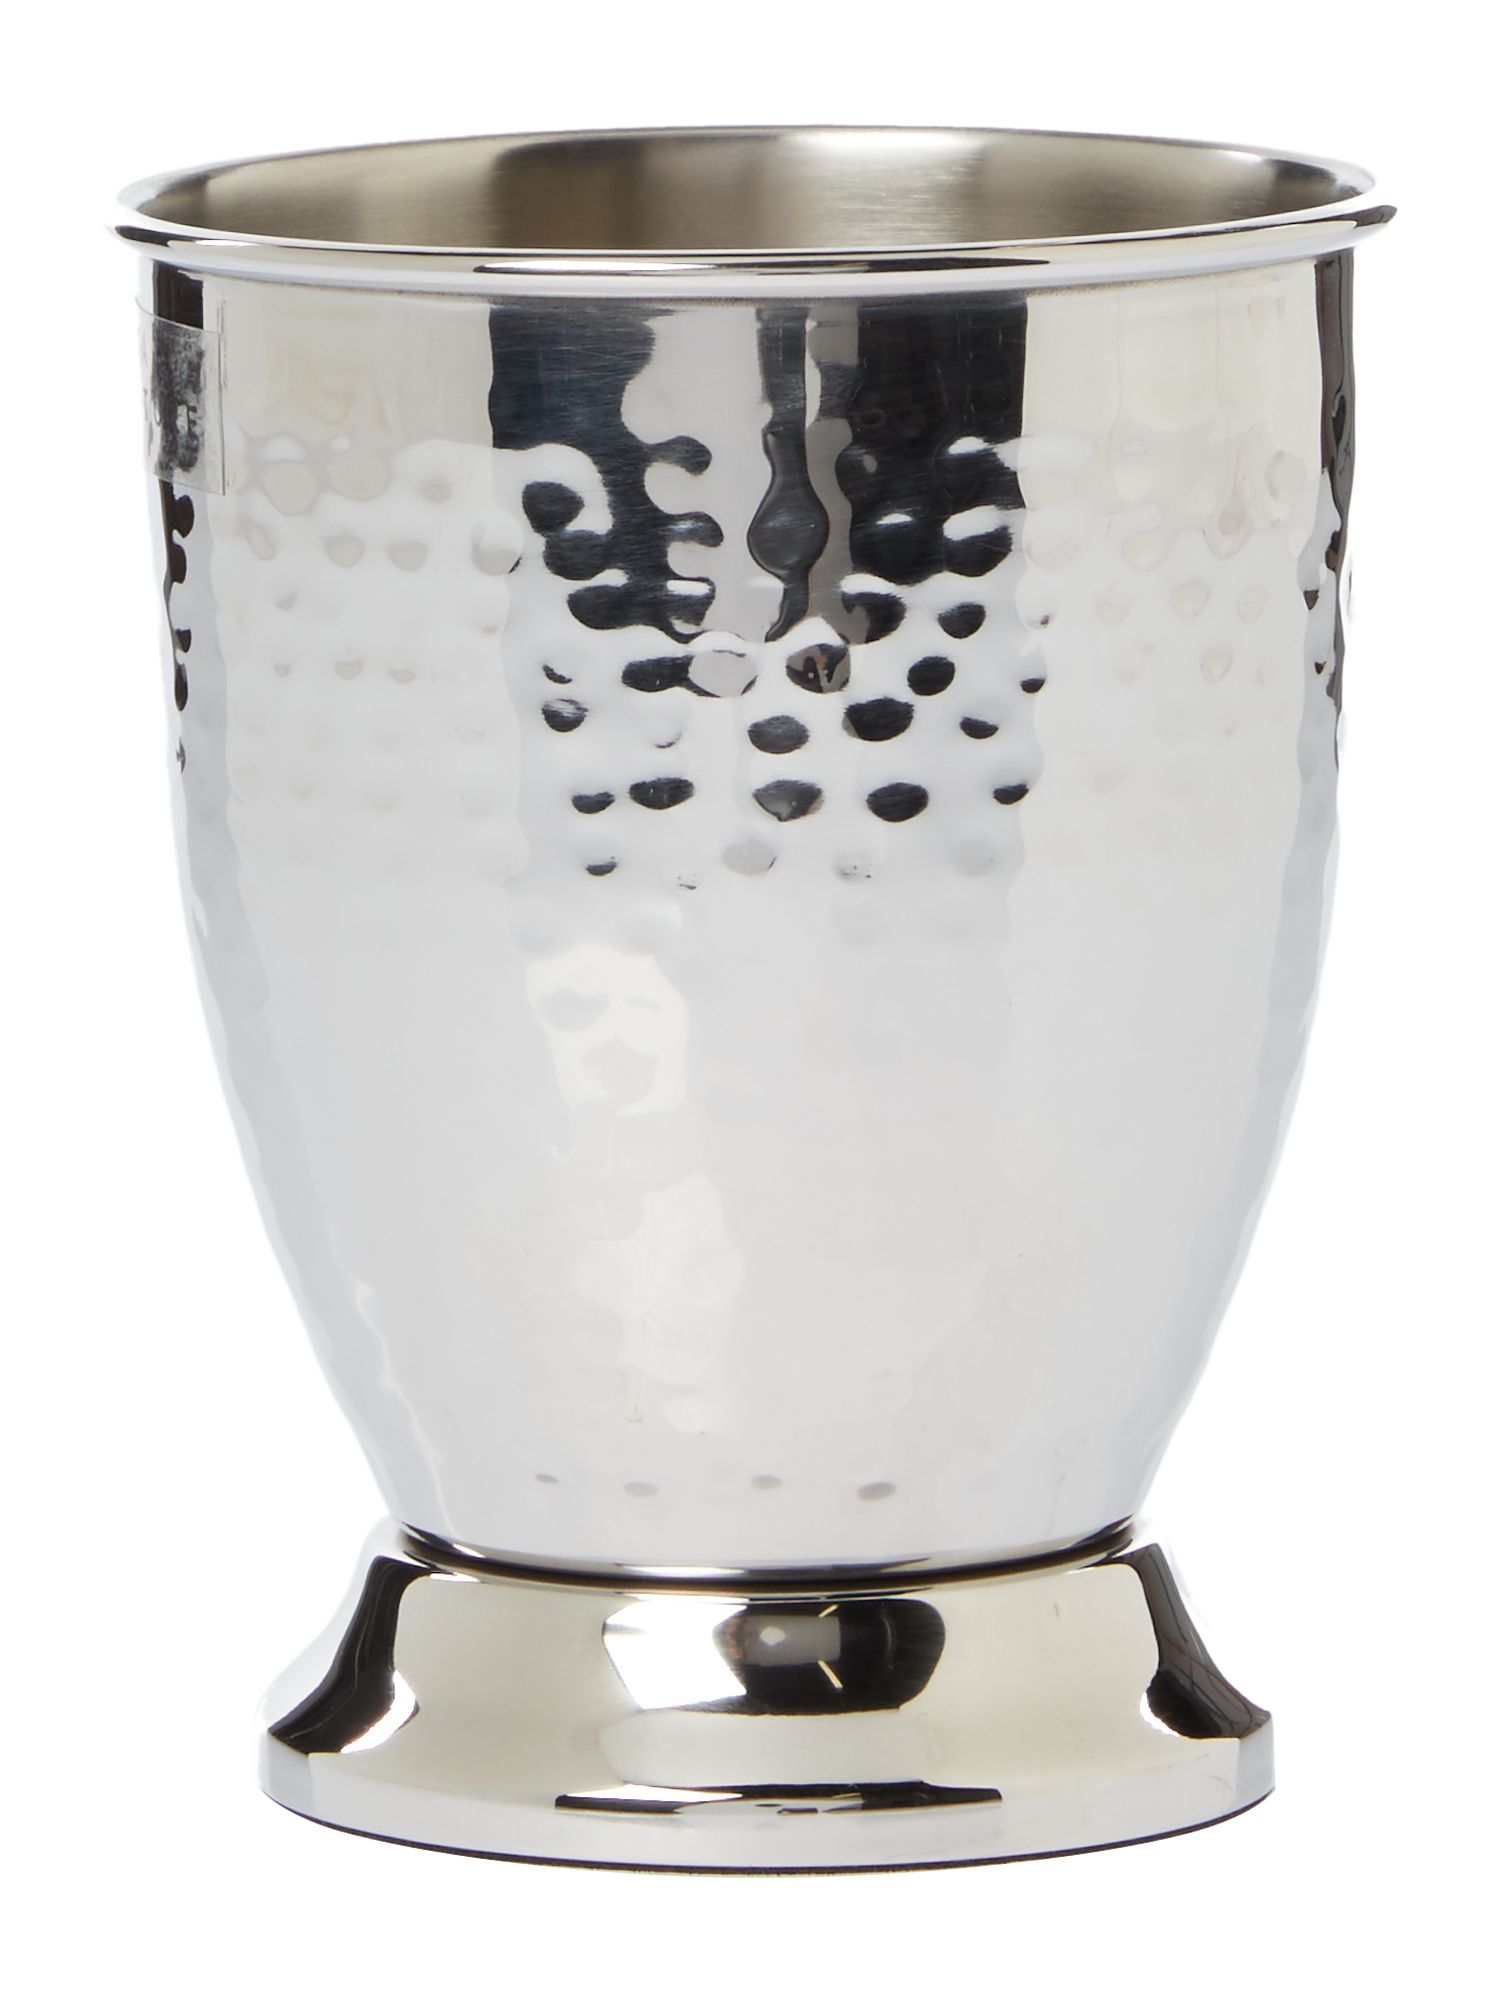 Casa Couture Casa Couture Hammered metal tumbler